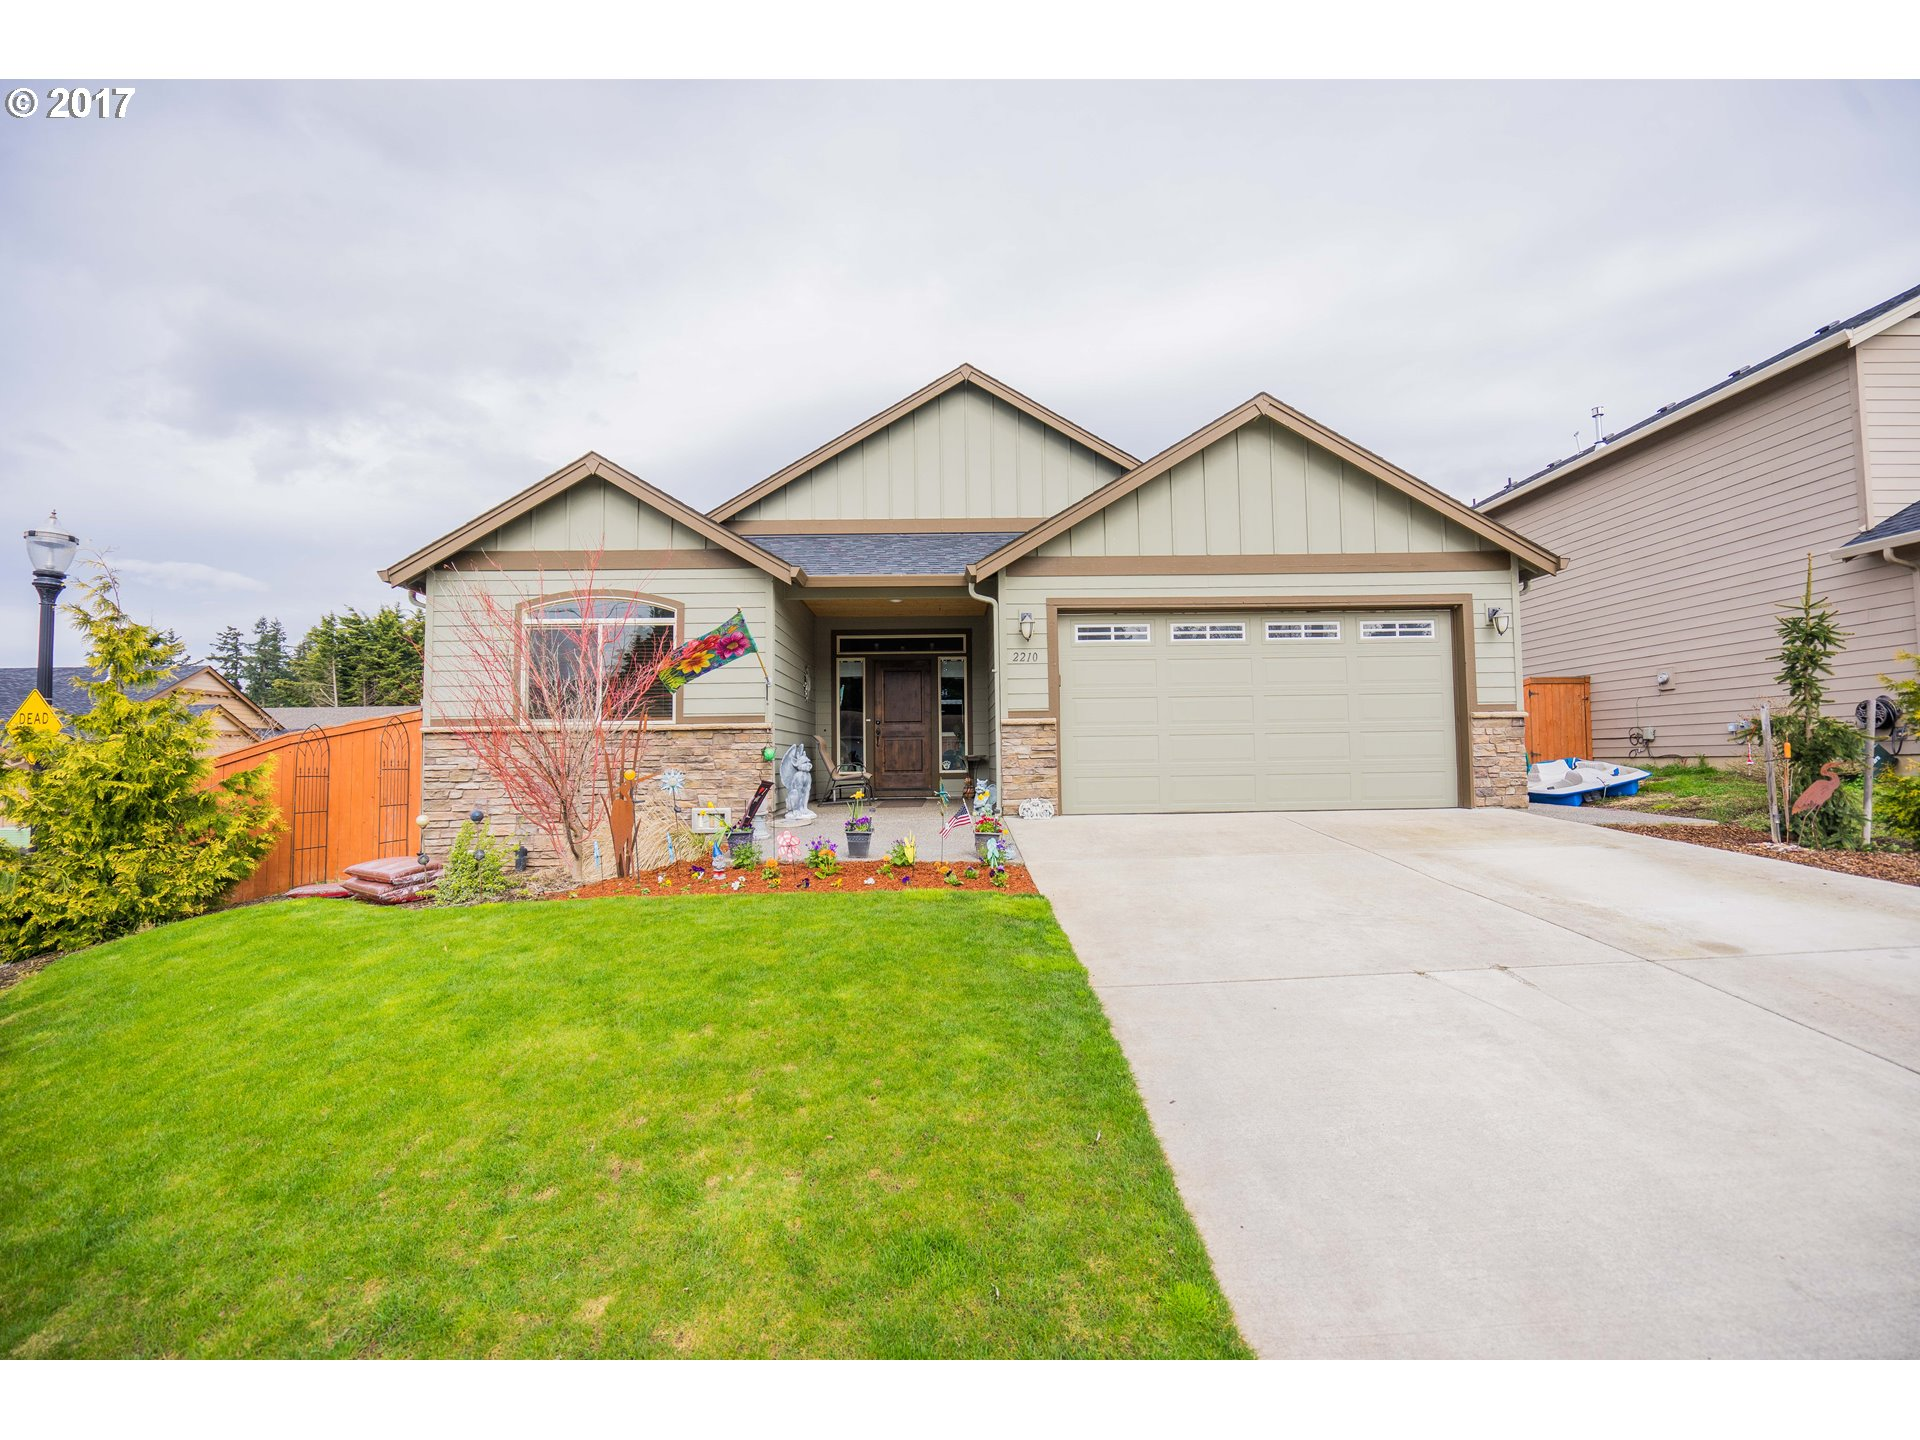 2210 NW 69TH ST, Vancouver, WA 98665